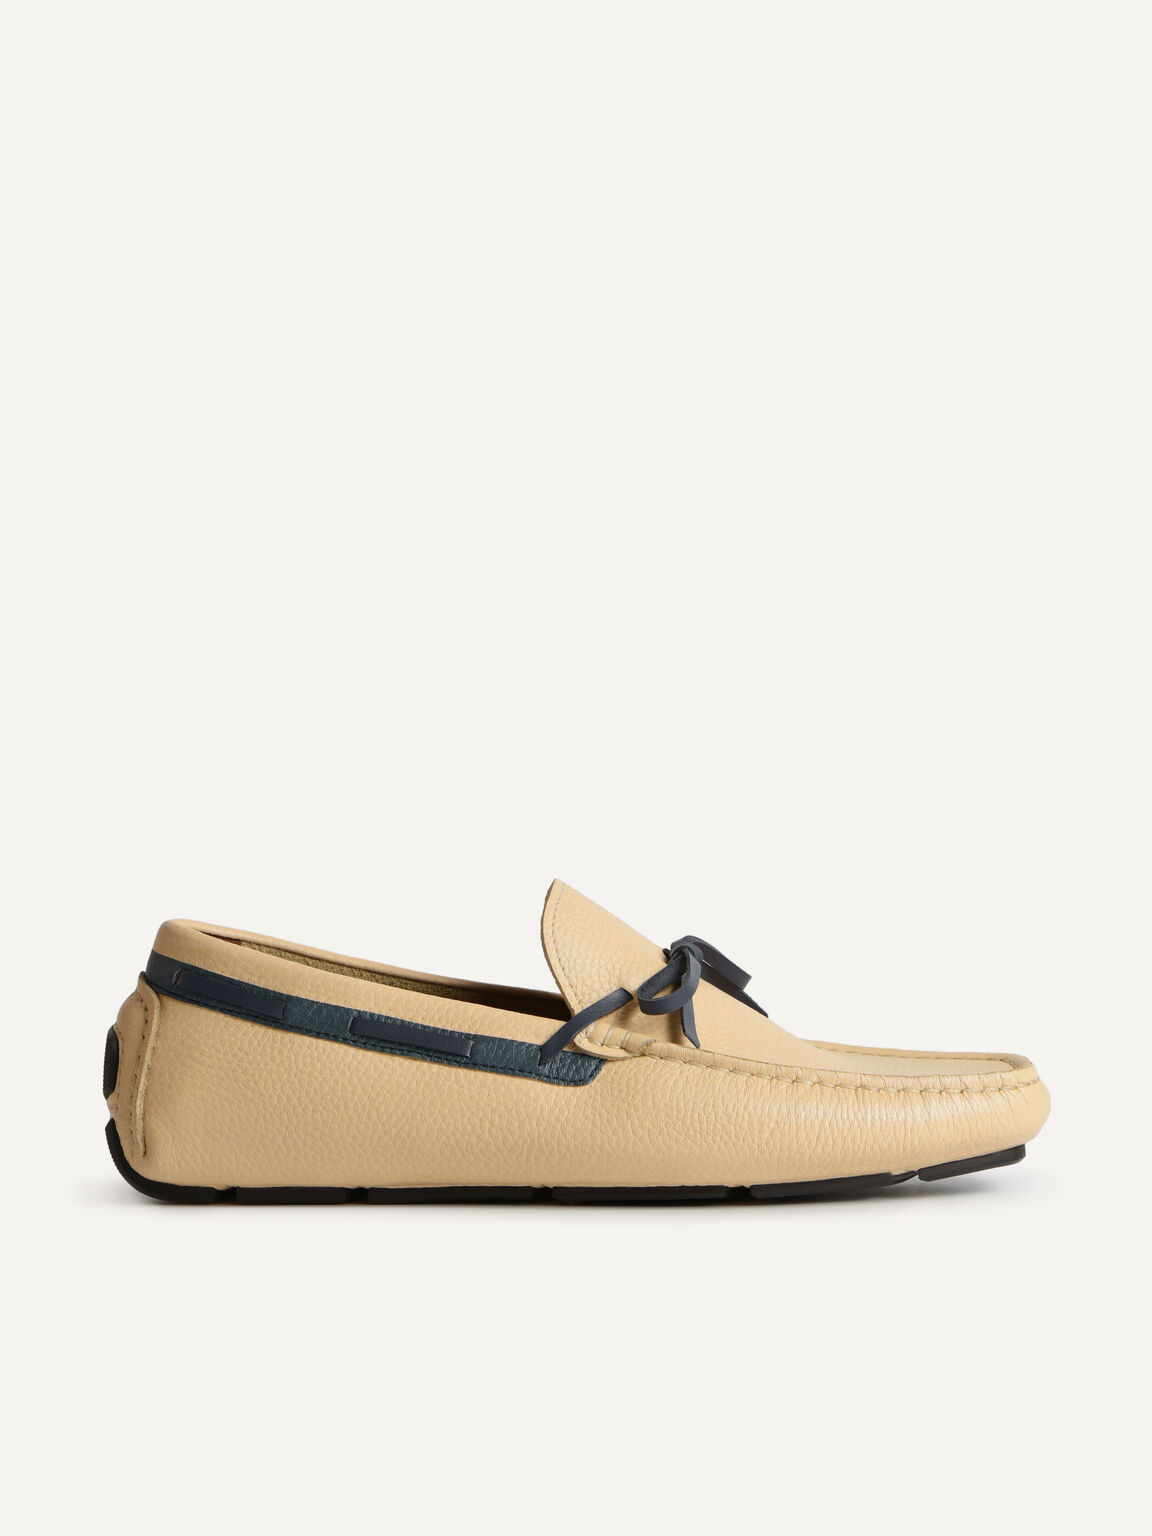 Textured Leather Moccasins with Bow, Beige, hi-res